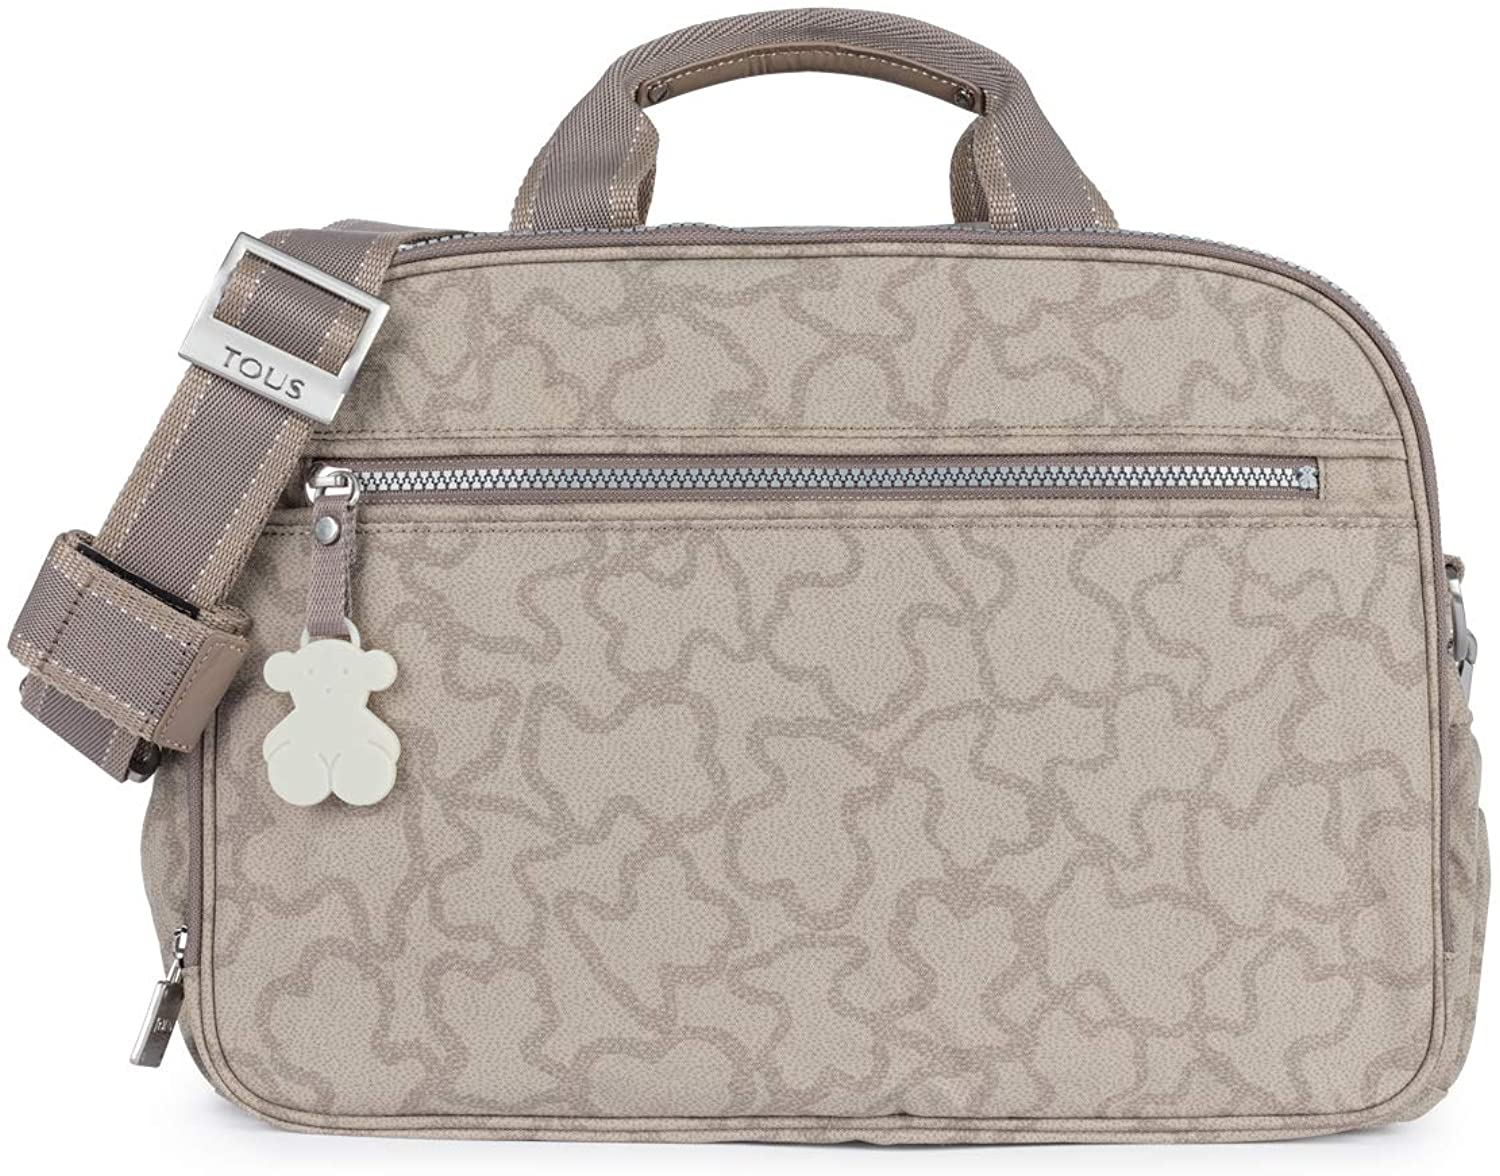 TOUS Kaos New Colores Baby Bag Stone Colored